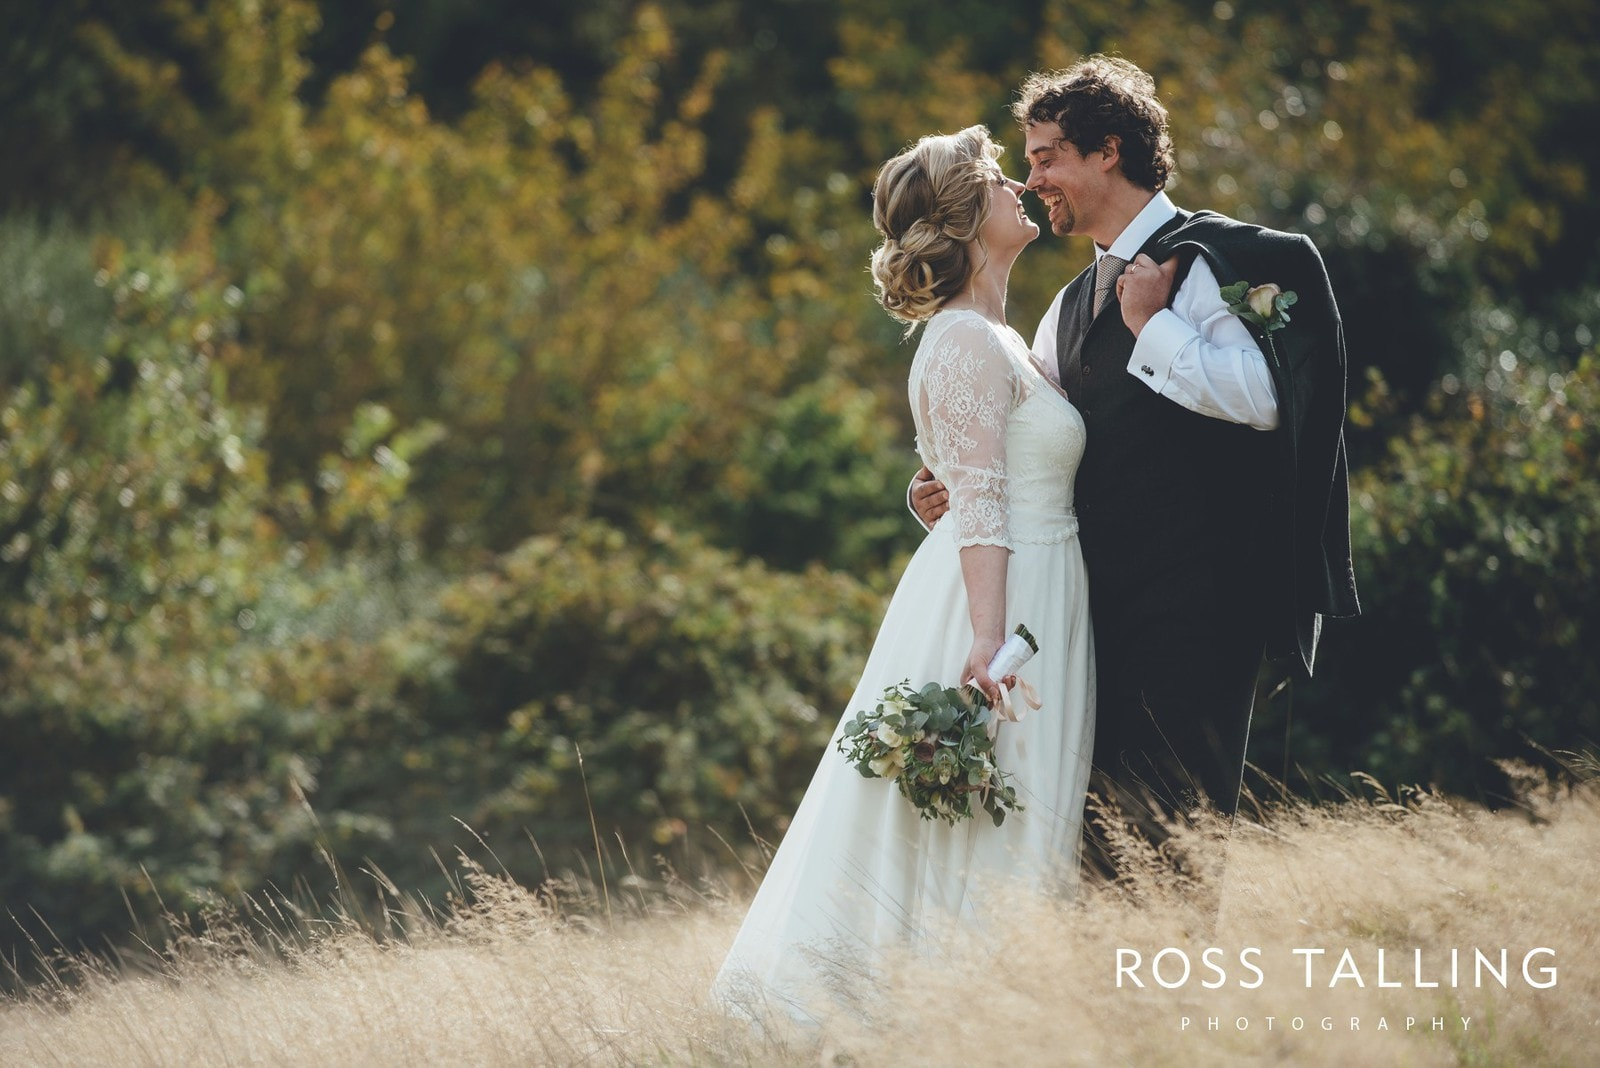 Wedding Photography at The Green Cornwall by Ross Talling_0058